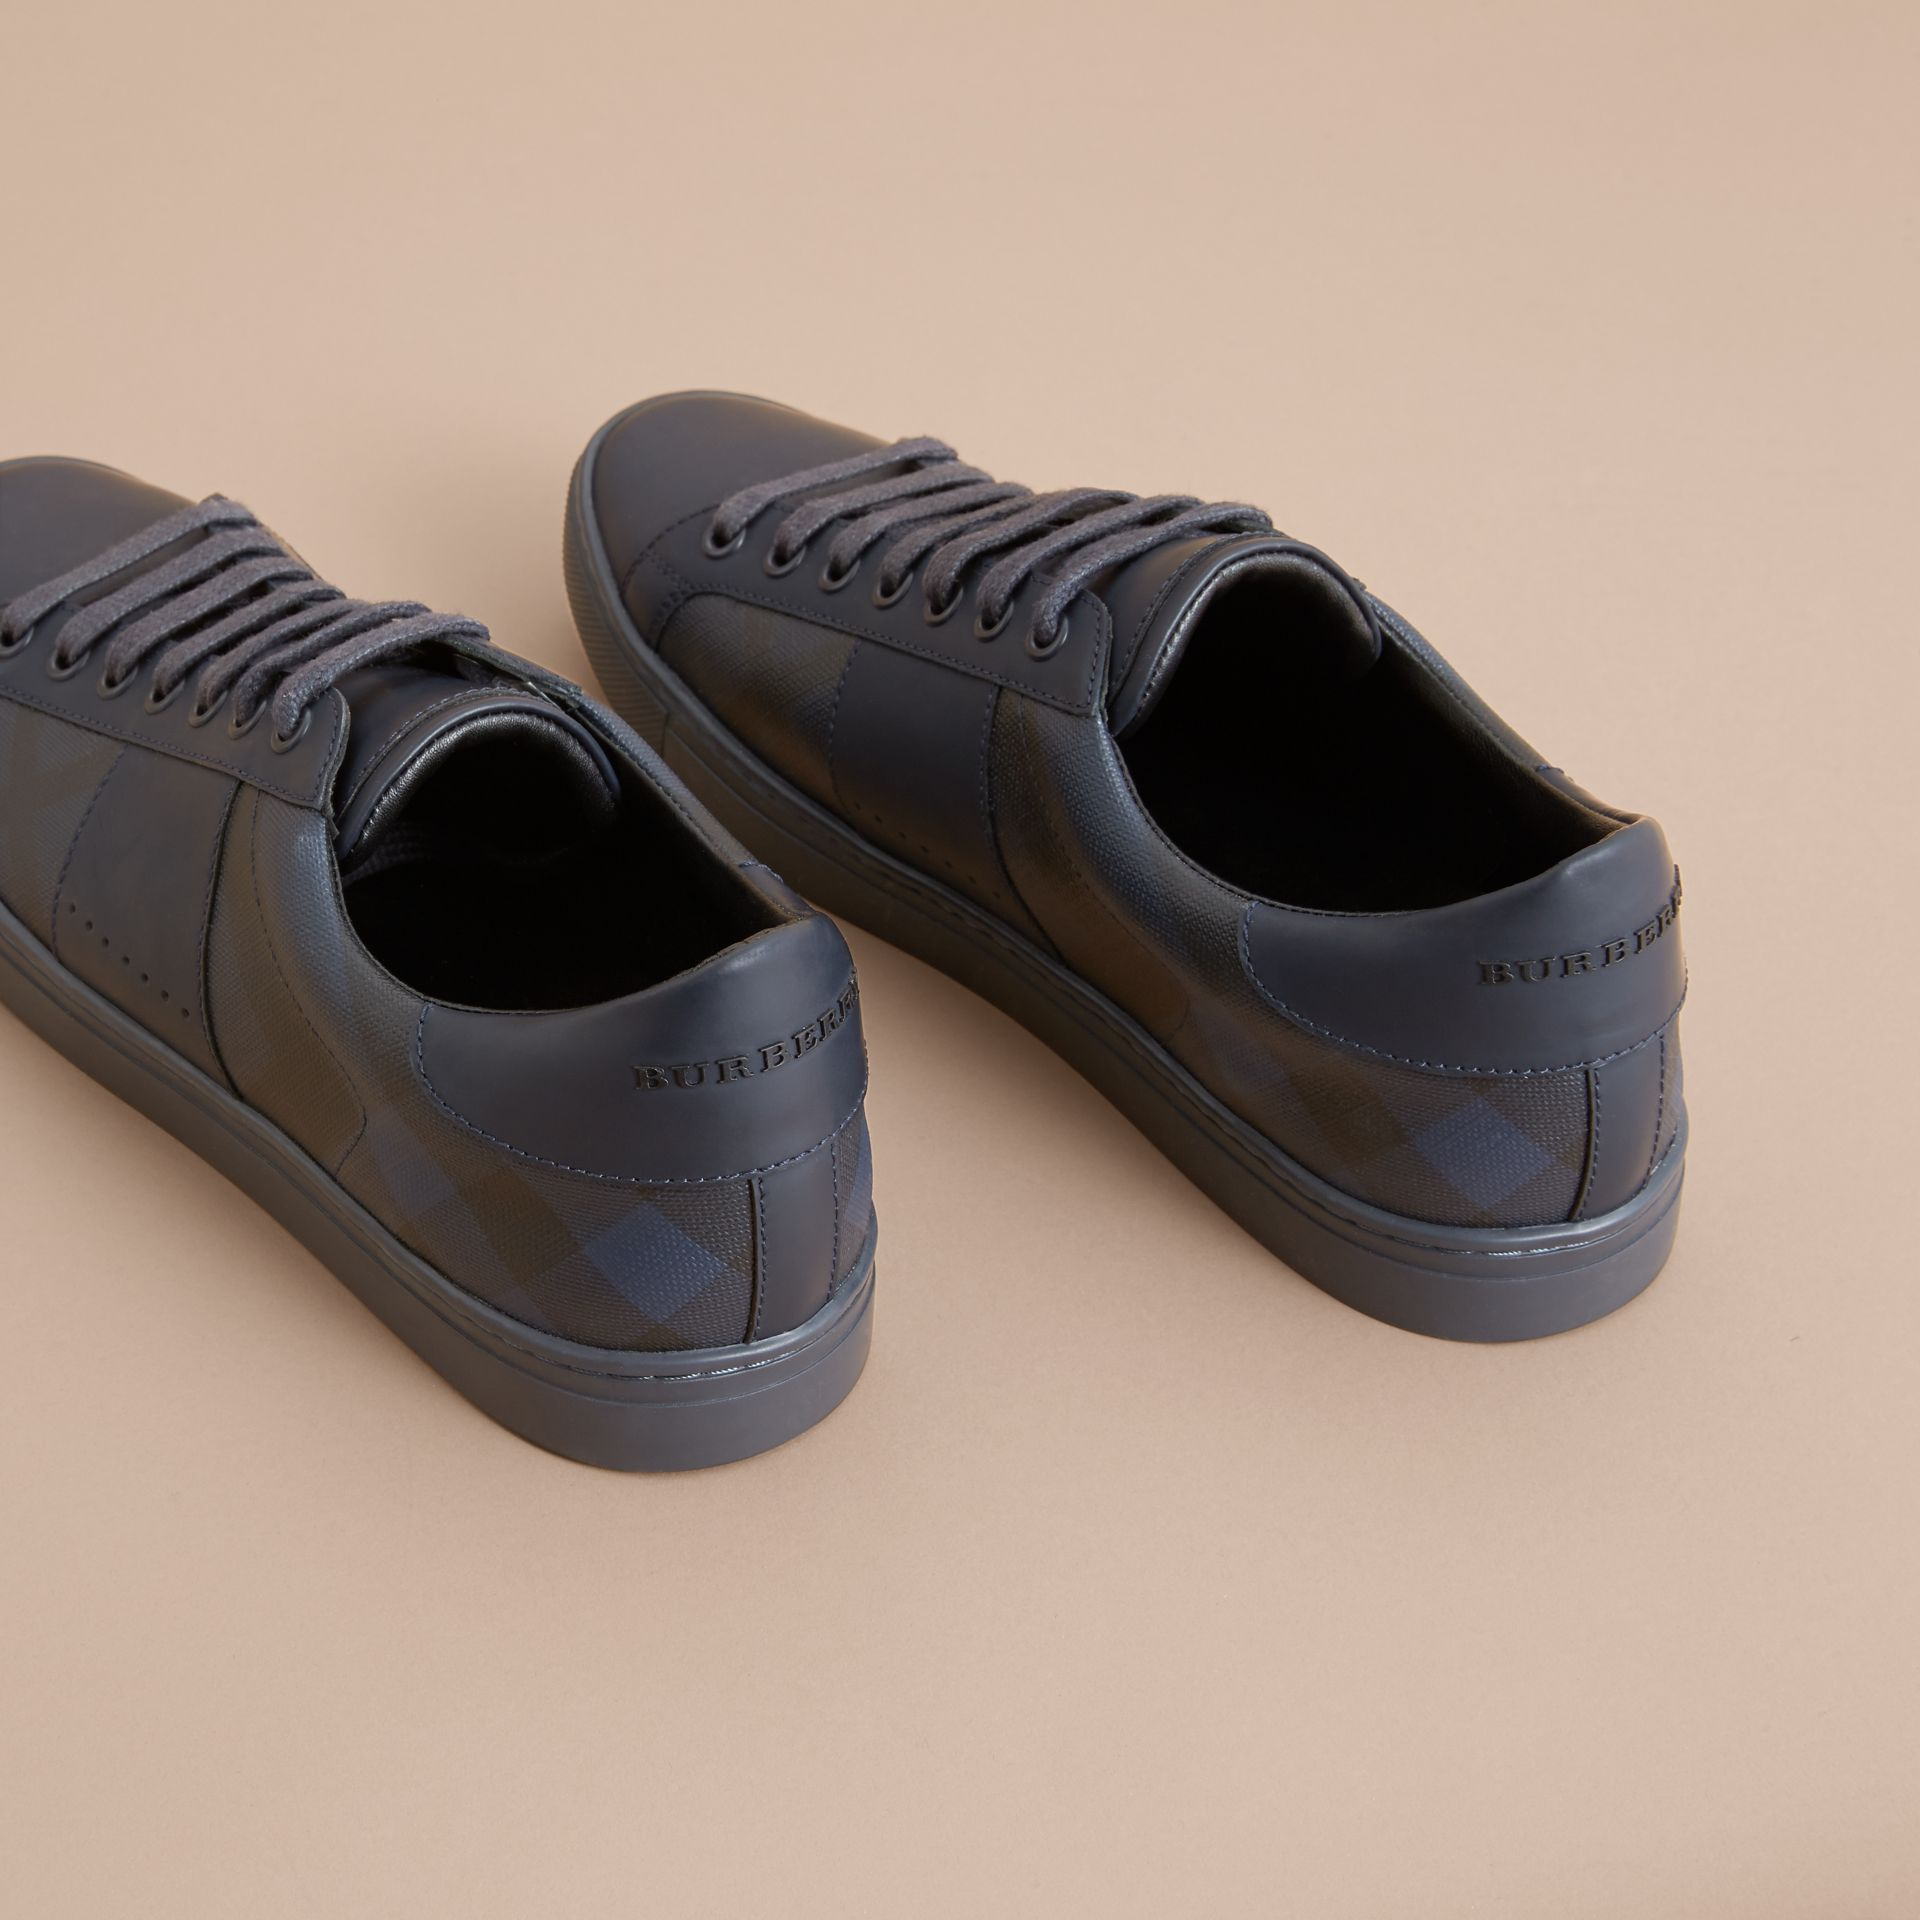 London Check and Leather Sneakers in Navy - Men | Burberry Australia - gallery image 3